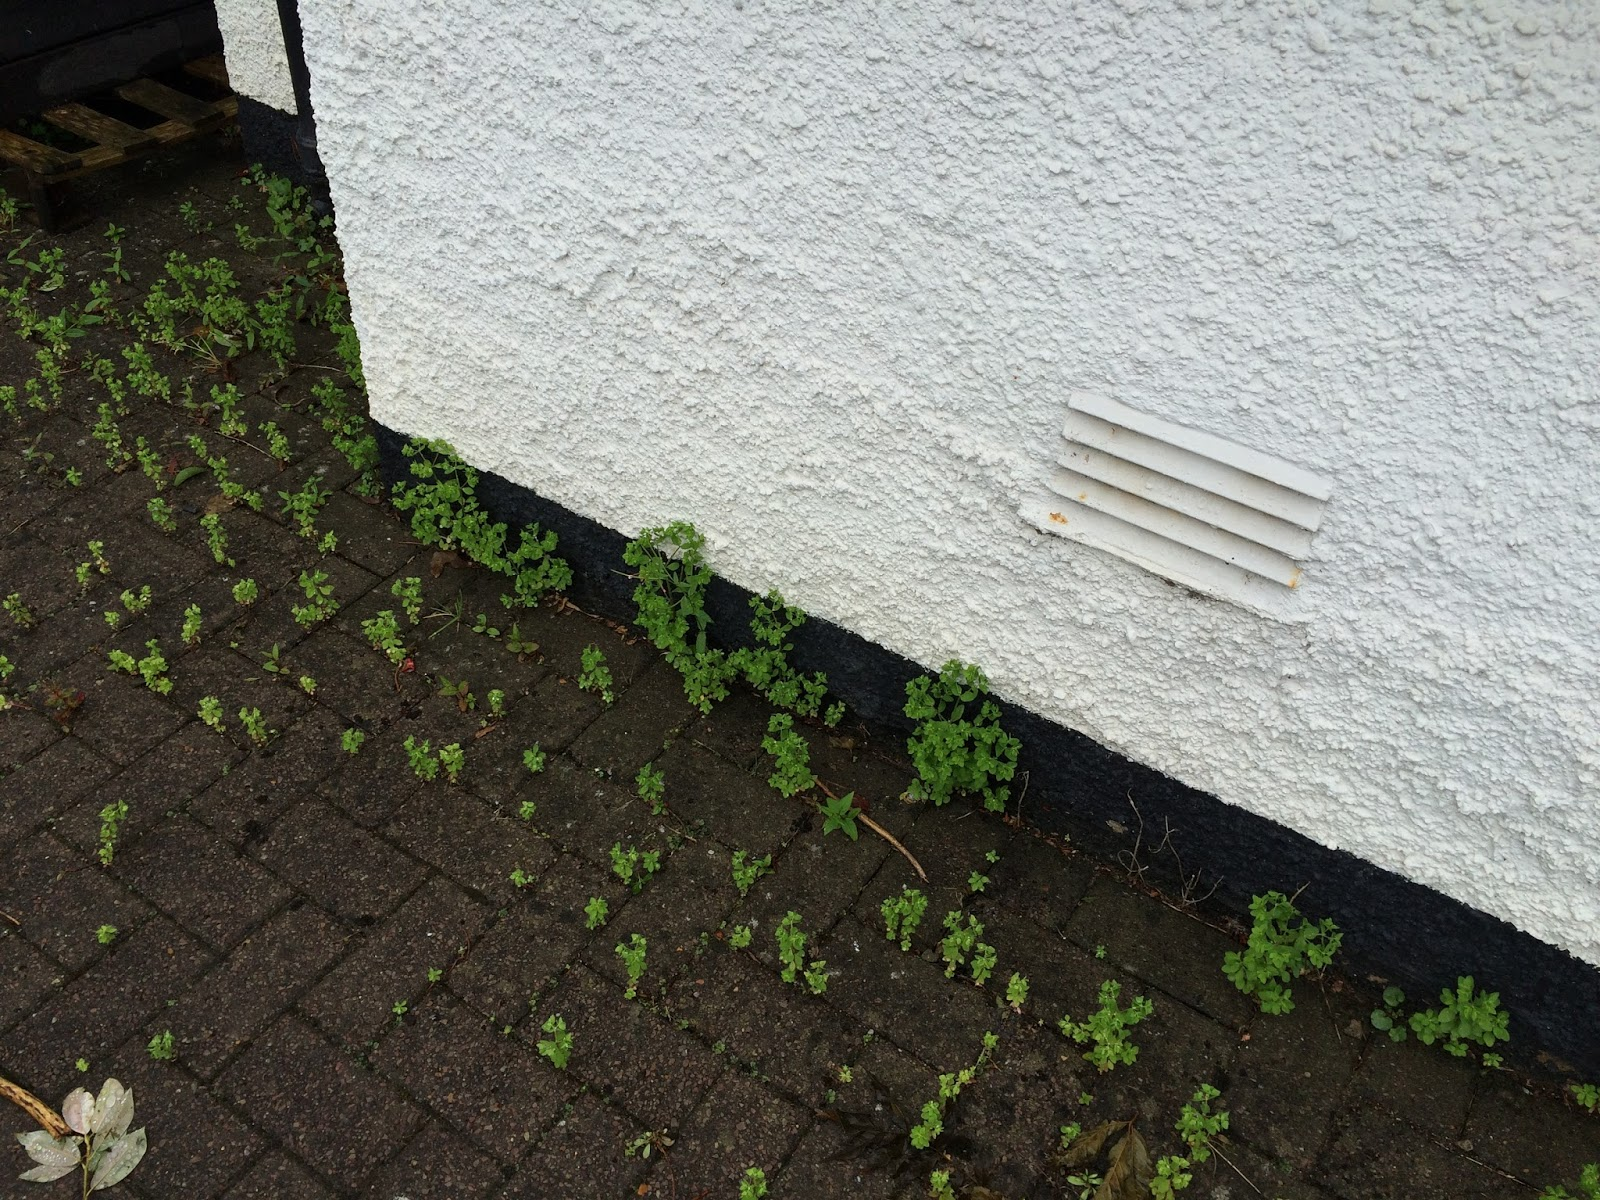 garden clean up - weeds on block paving